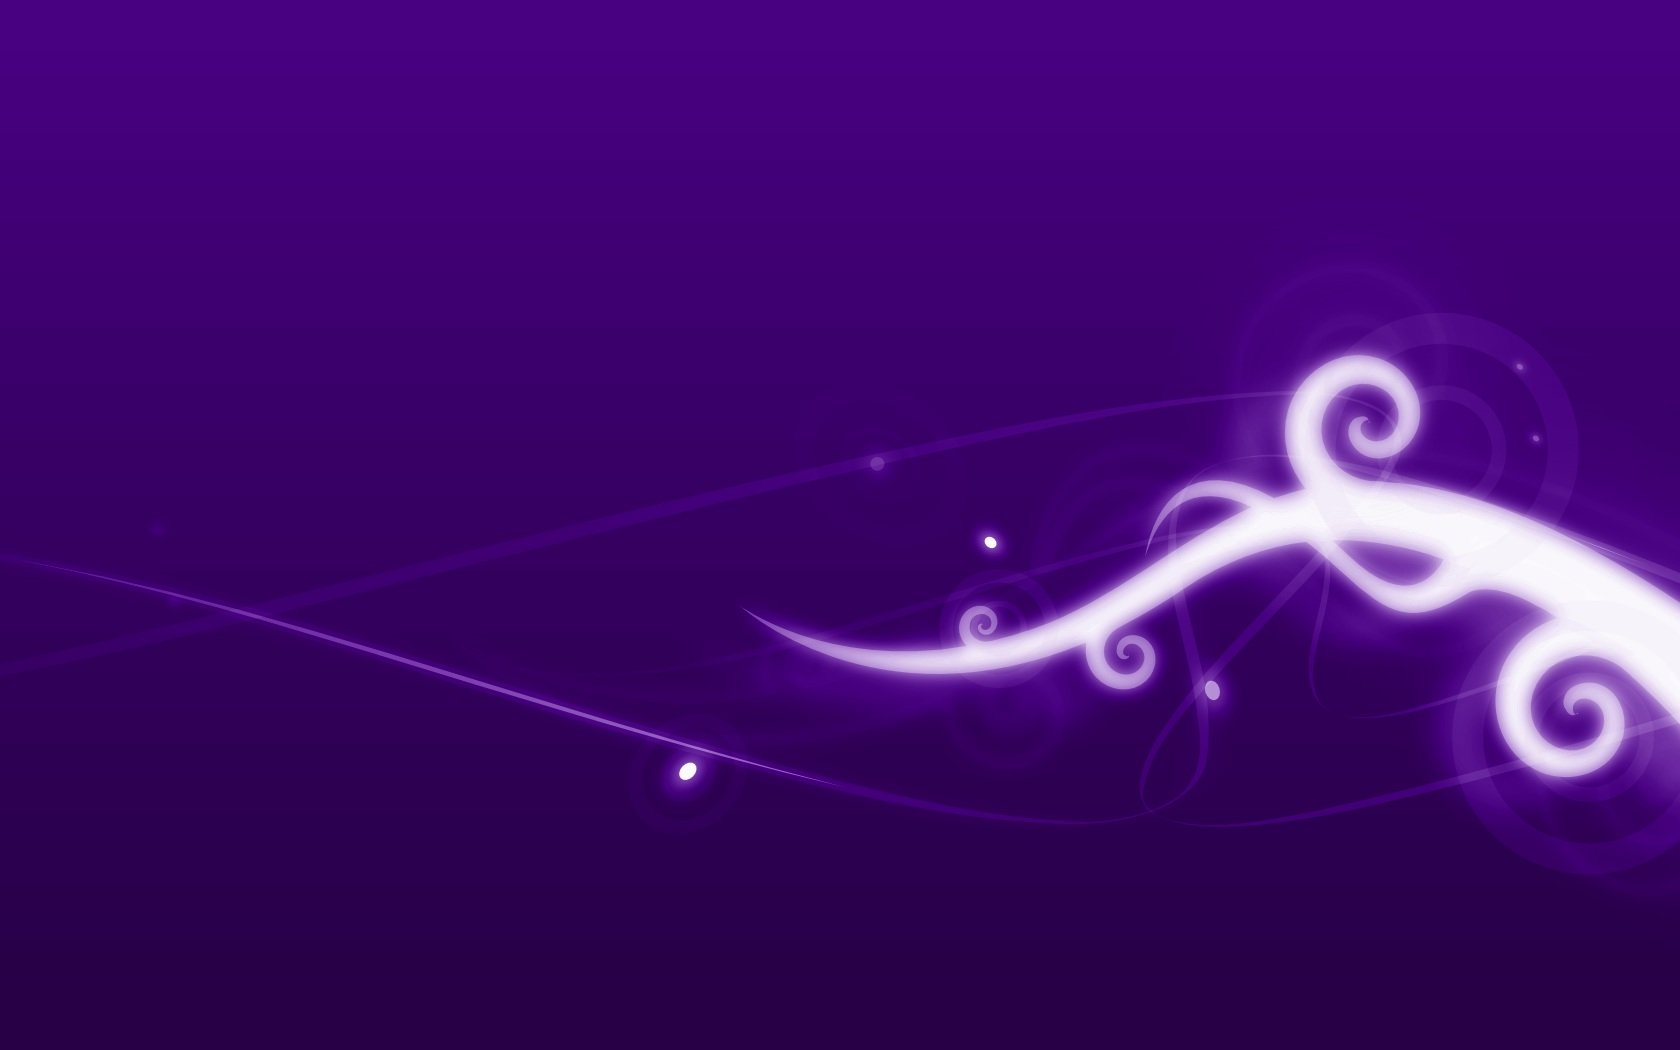 Free download Purple wallpaper ID:405393 hd 1680x1050 for PC